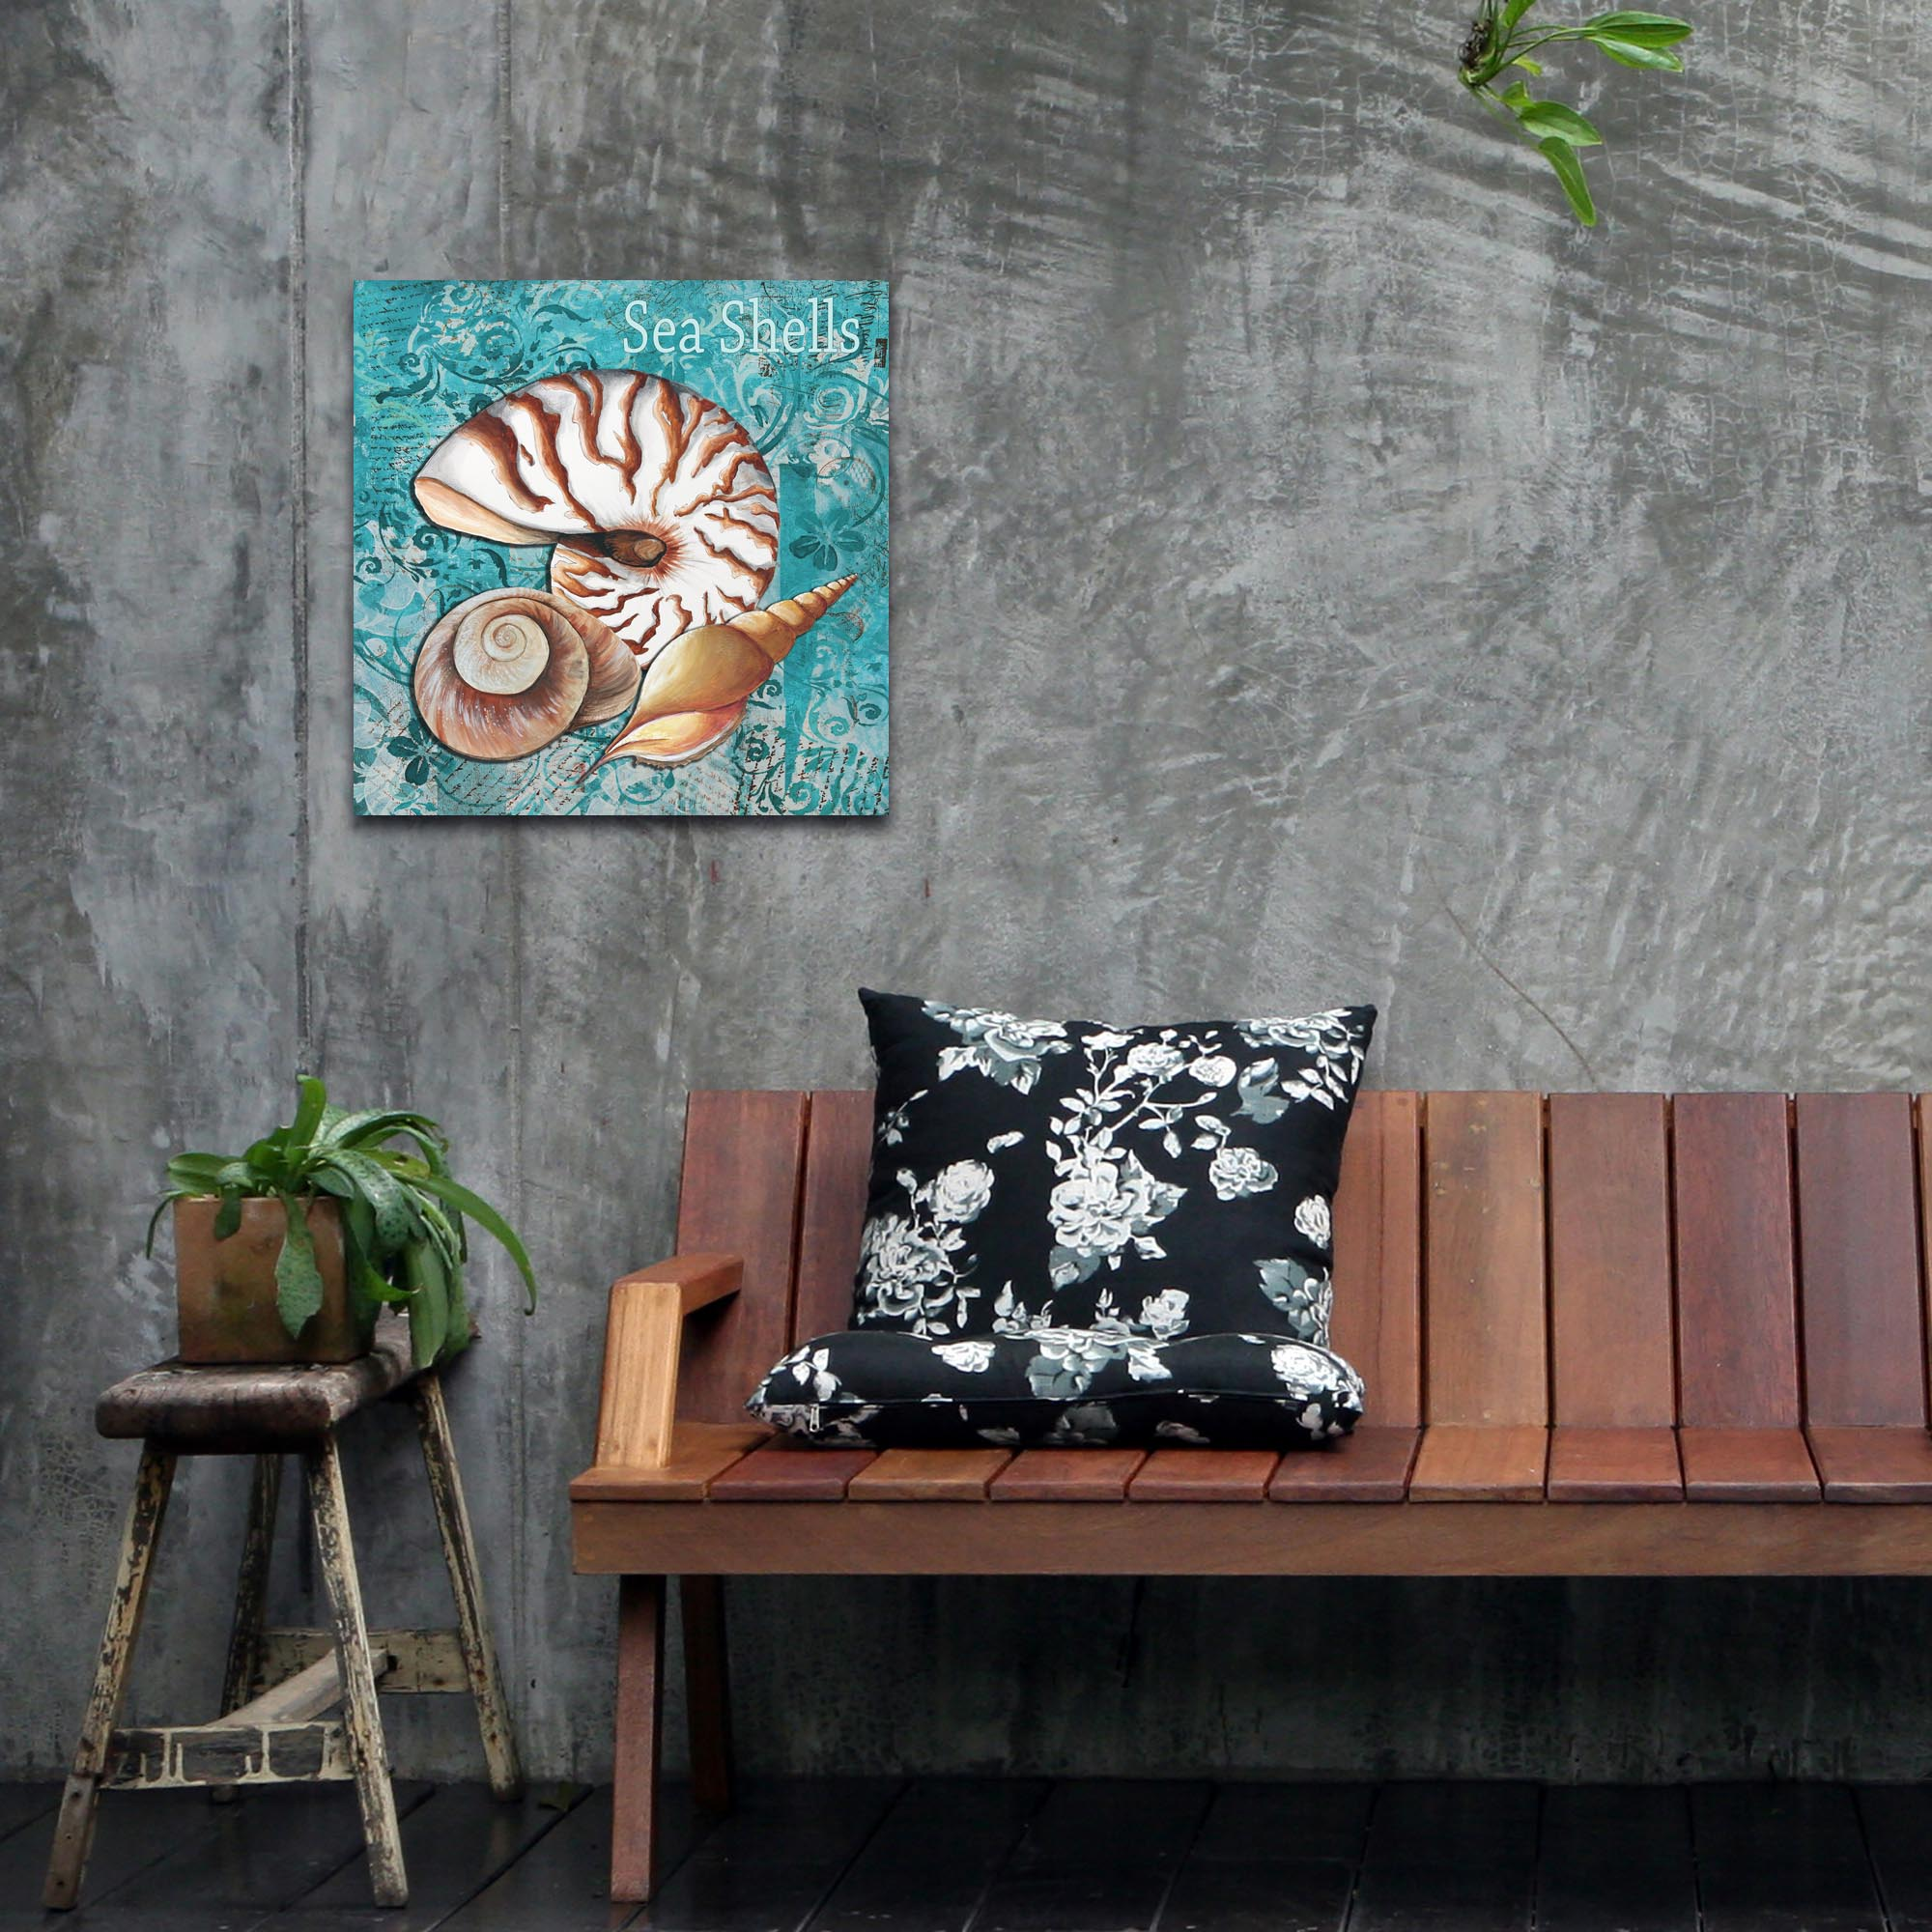 Beach Decor 'Sea Shells' - Coastal Bathroom Art on Metal or Acrylic - Lifestyle View